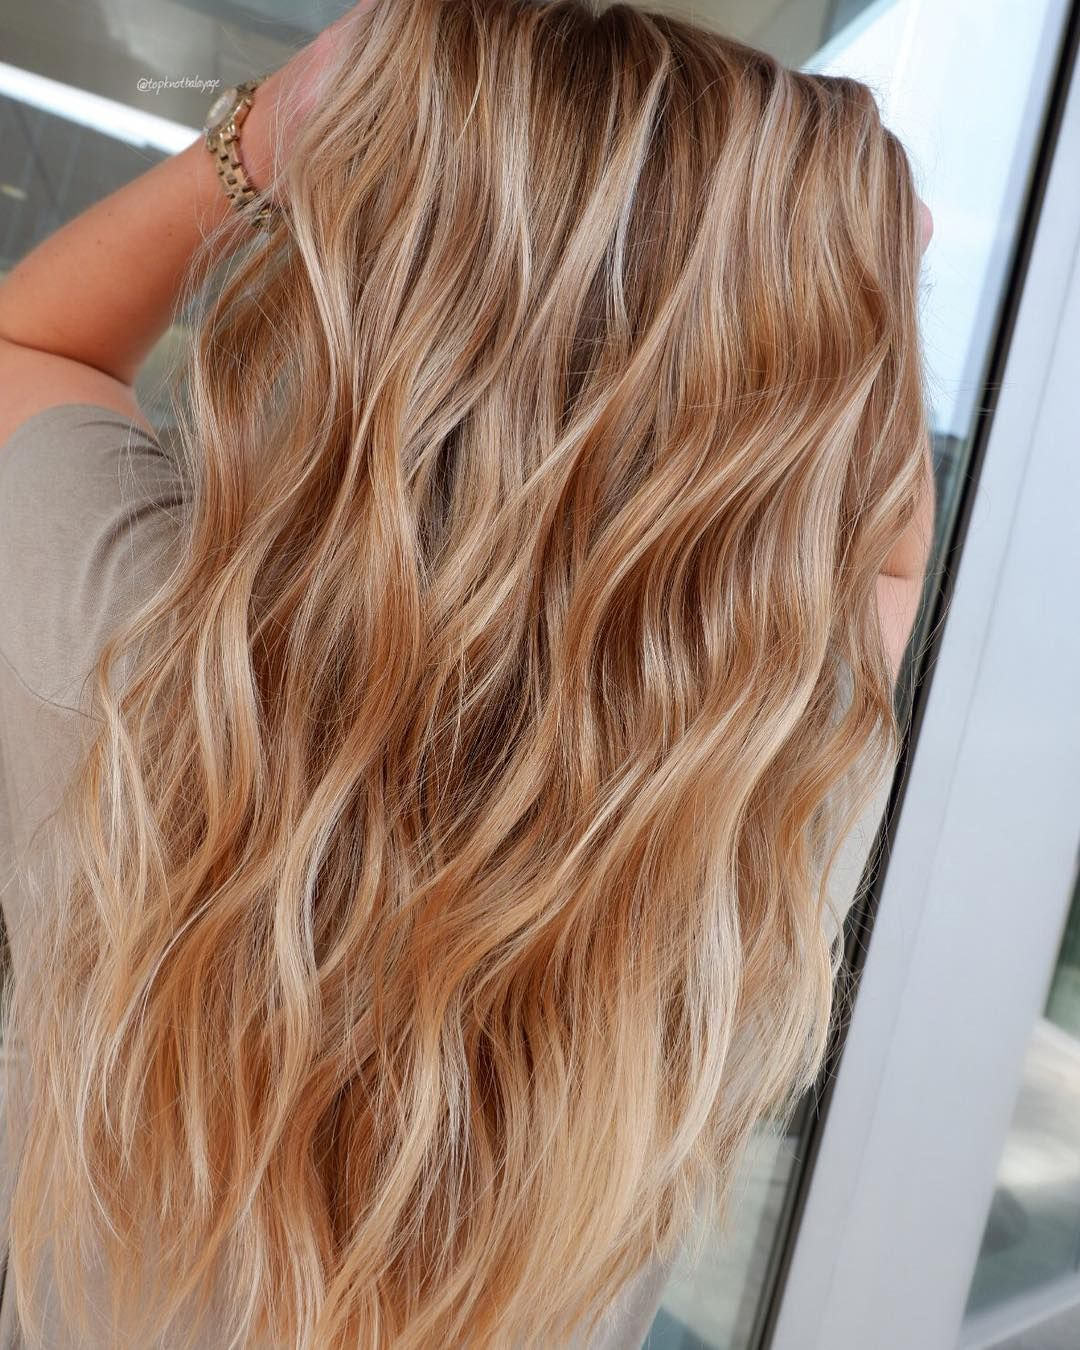 Beachwaves Without The Salt Sand Sun Damage Count Us In Topknotbalayage Proformula Strawberry Blonde Hair Color Silver Blonde Hair Hair Styles